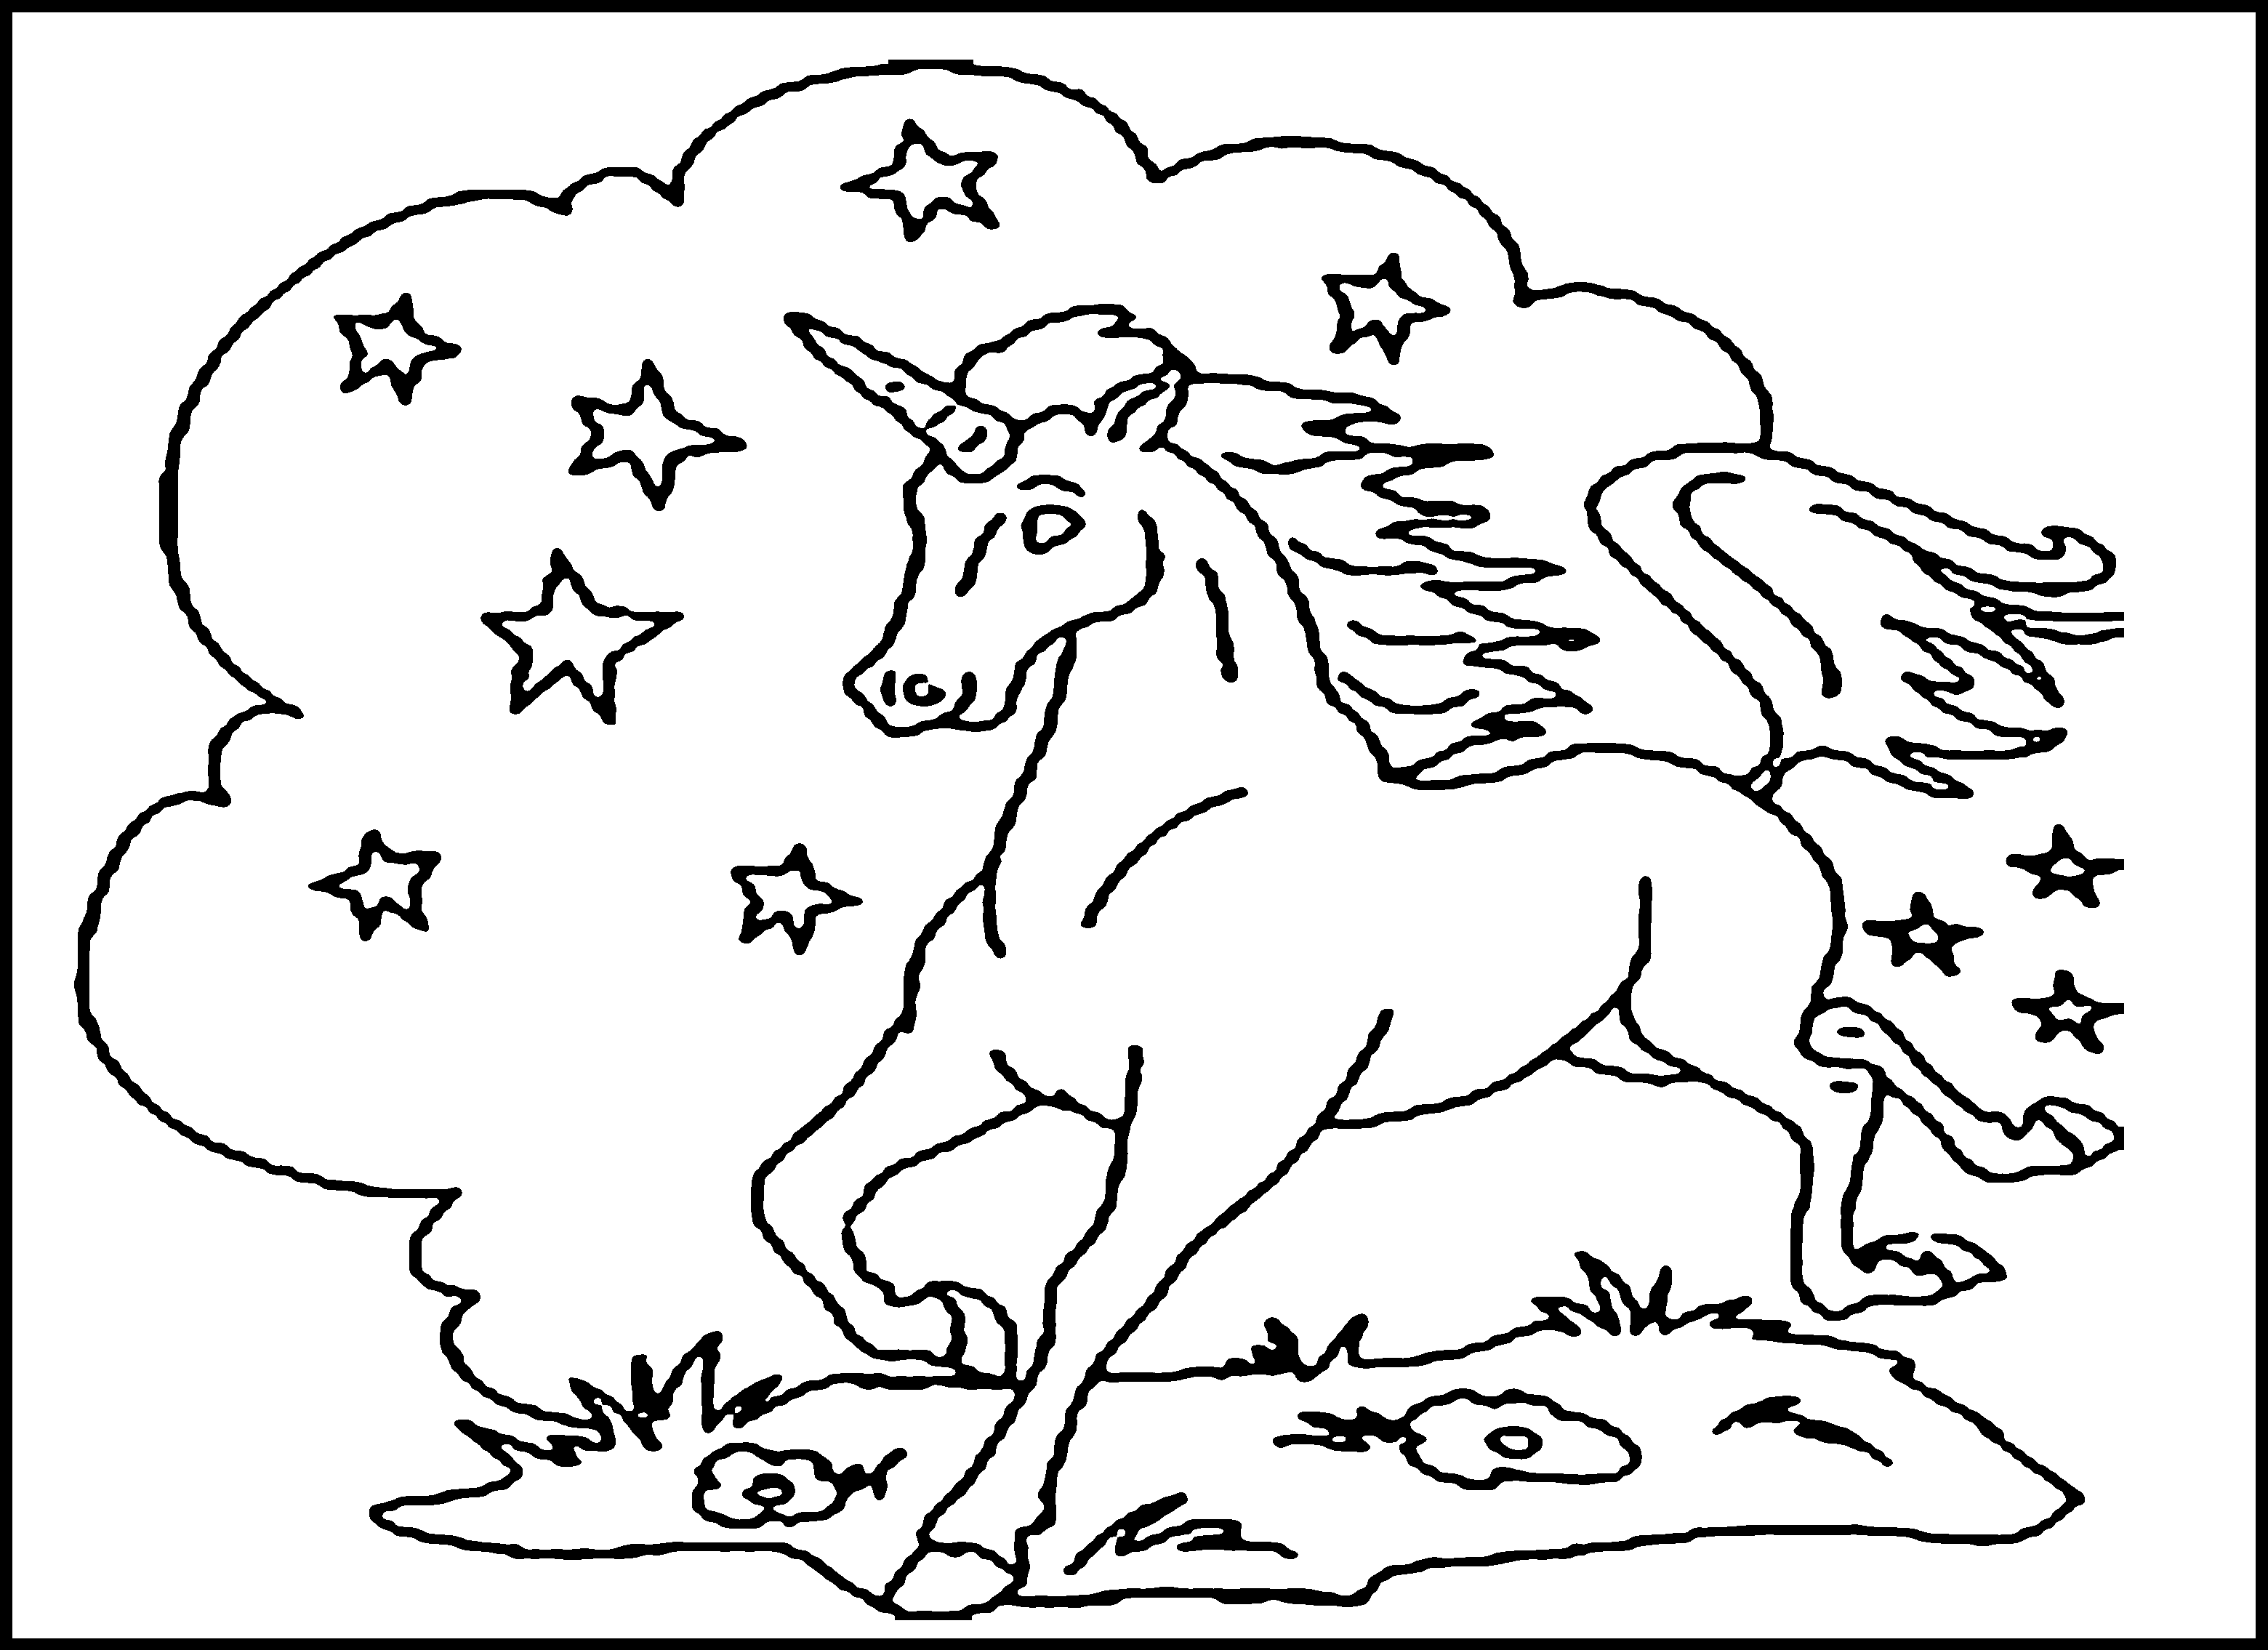 Toddler coloring pages printable free - Unicorn Printable Coloring Pages